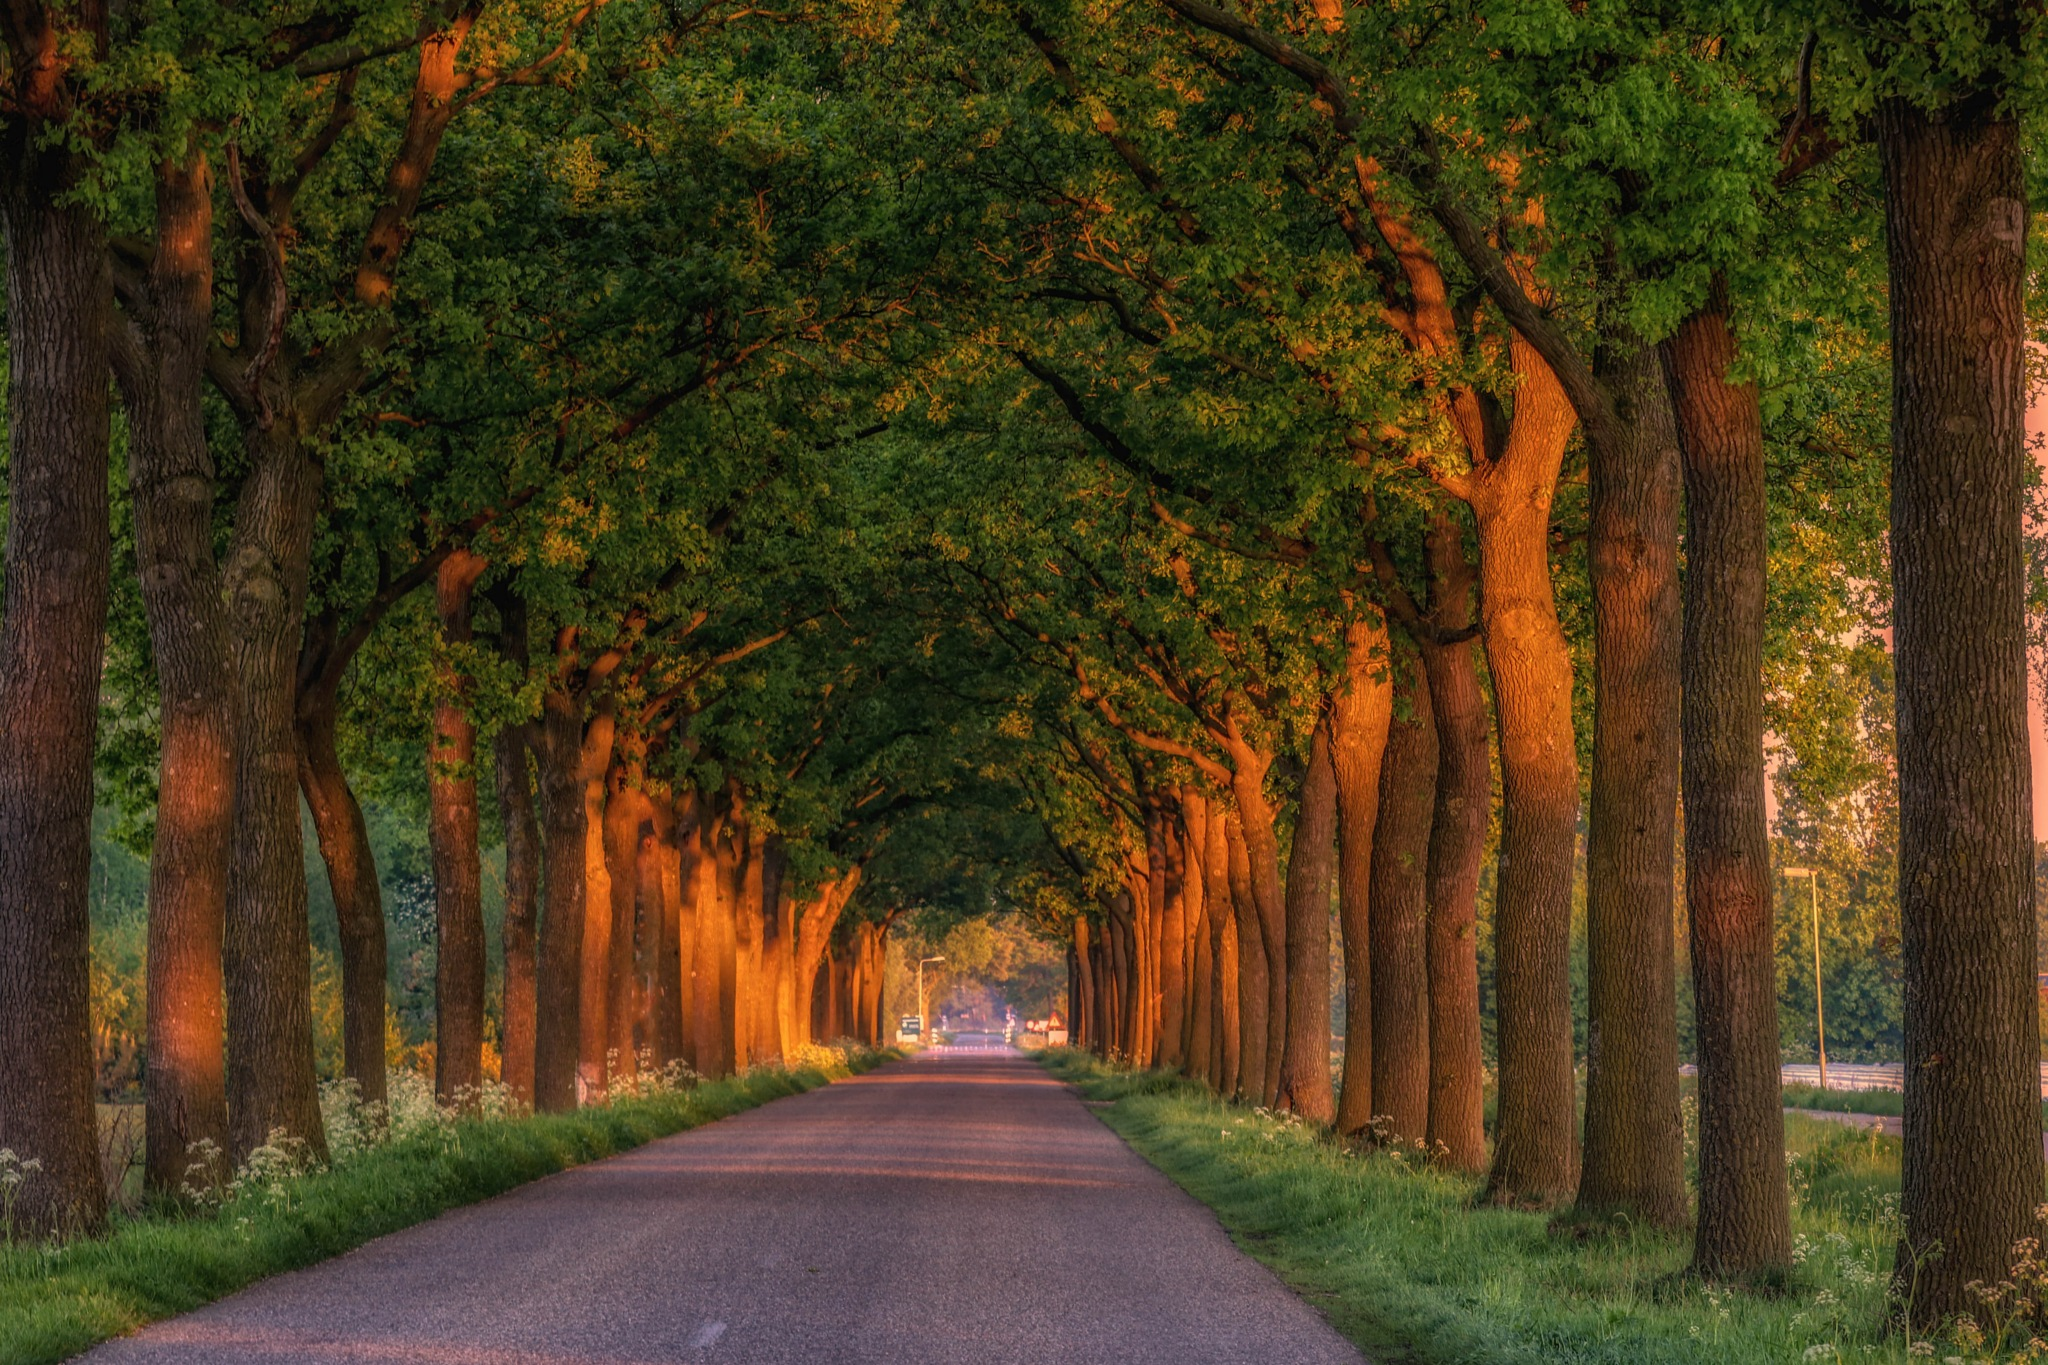 Tunnel of Trees by Theo Hermsen